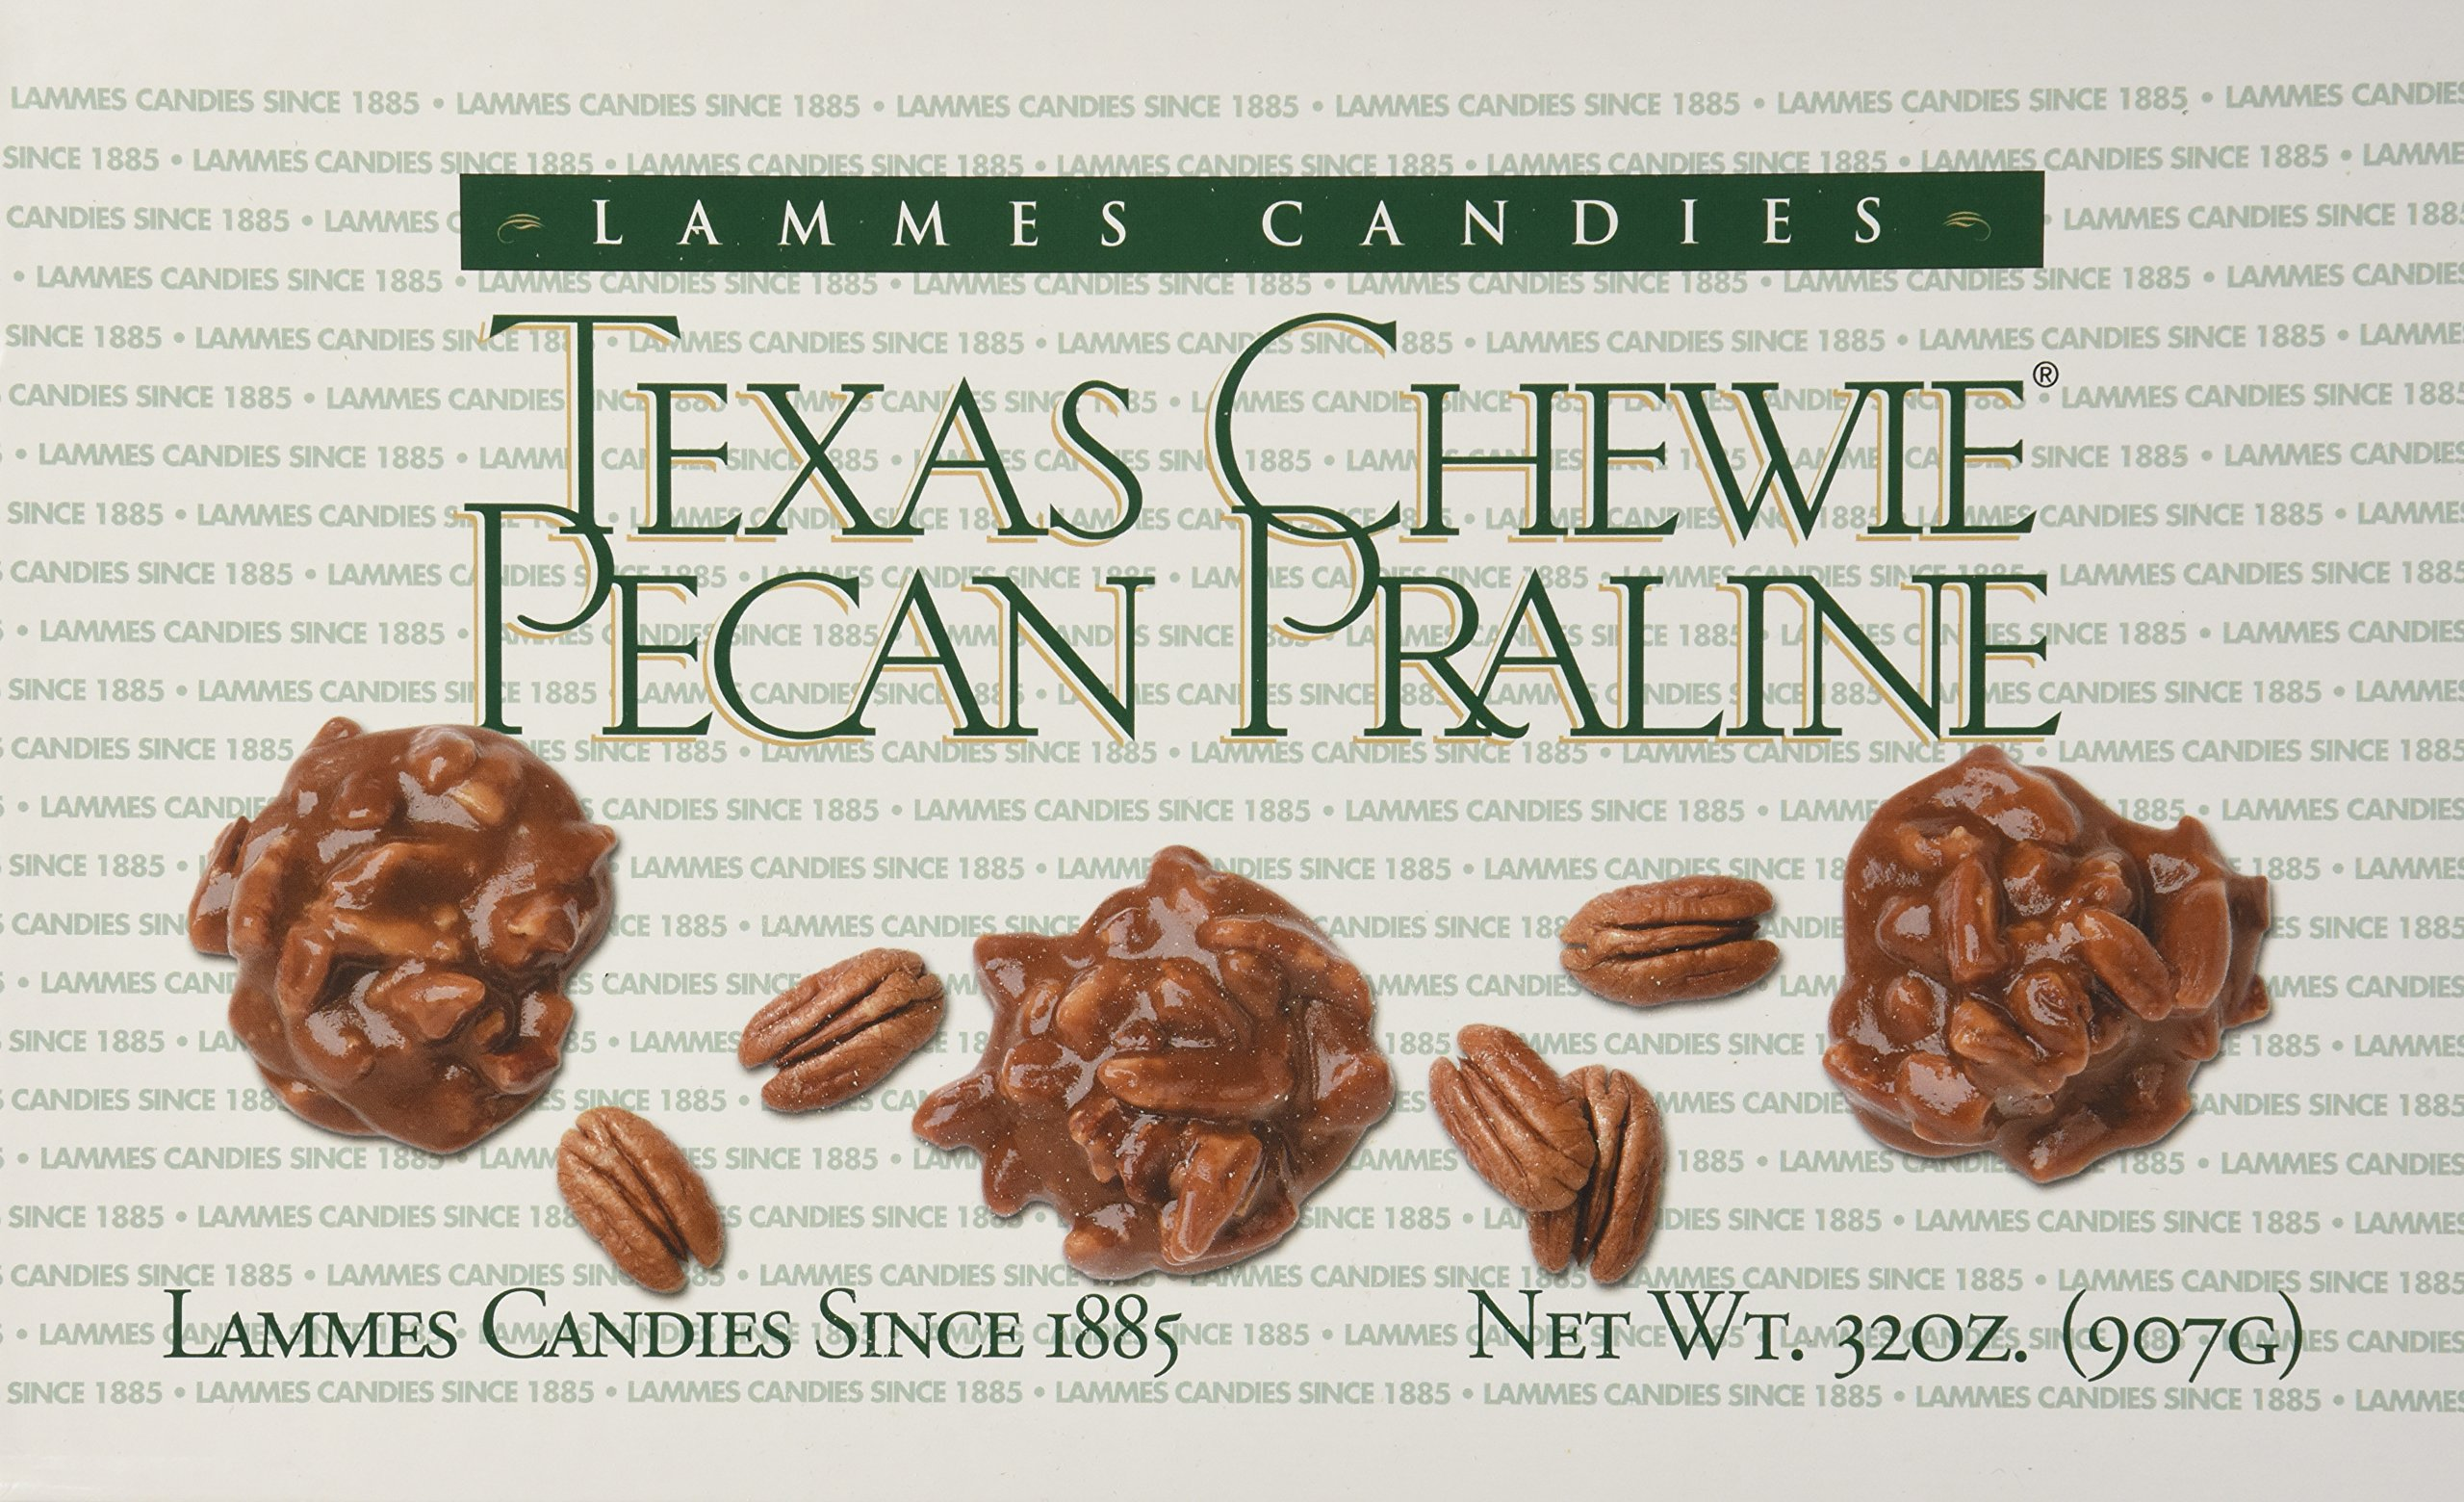 Lammes Candies Texas Chewie Pecan Pralines, 32 Oz Box by Lammes Candies